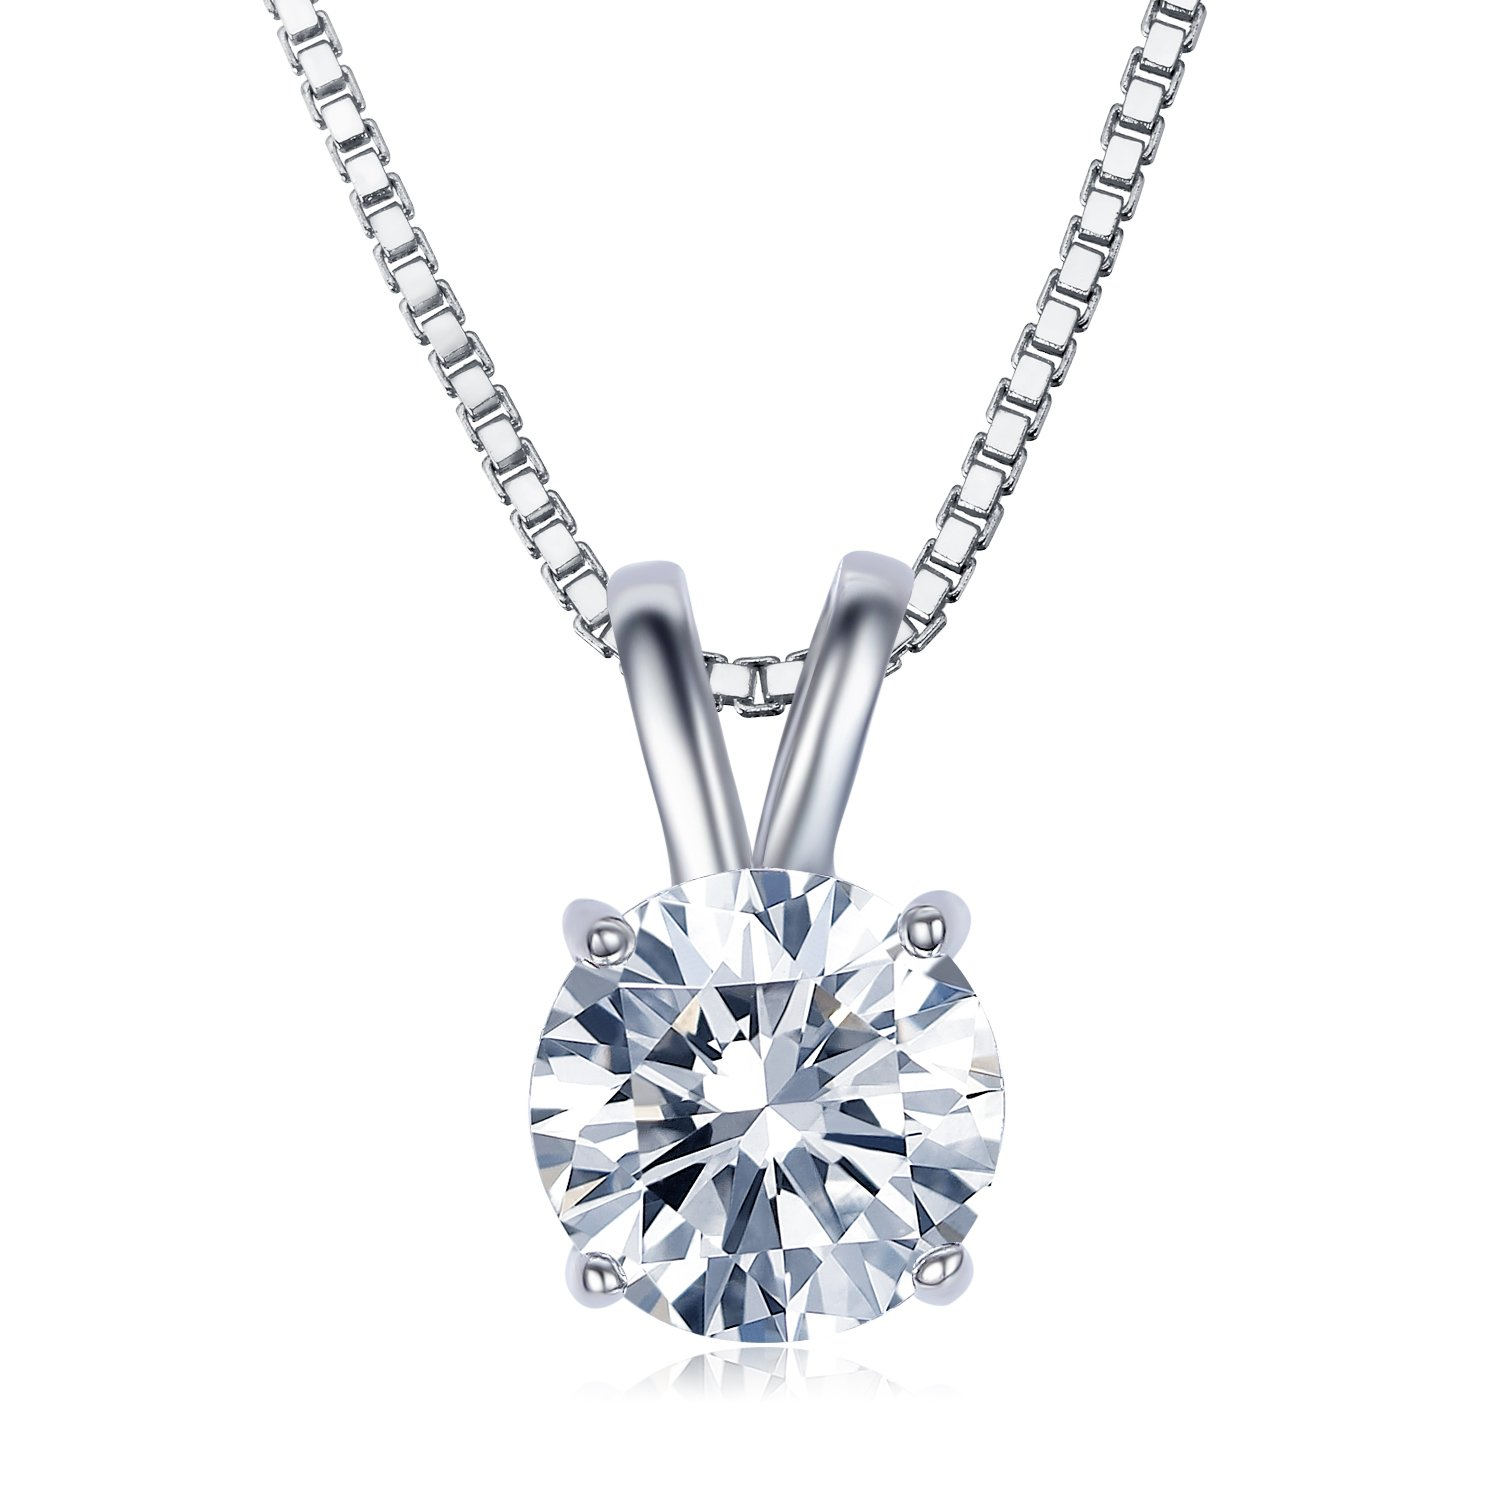 UMODE Jewelry 2 Carat Round Cut Clear Cubic Zirconia CZ Solitaire Pendant Necklace for Women 18'' (16''+2'' Ext.)